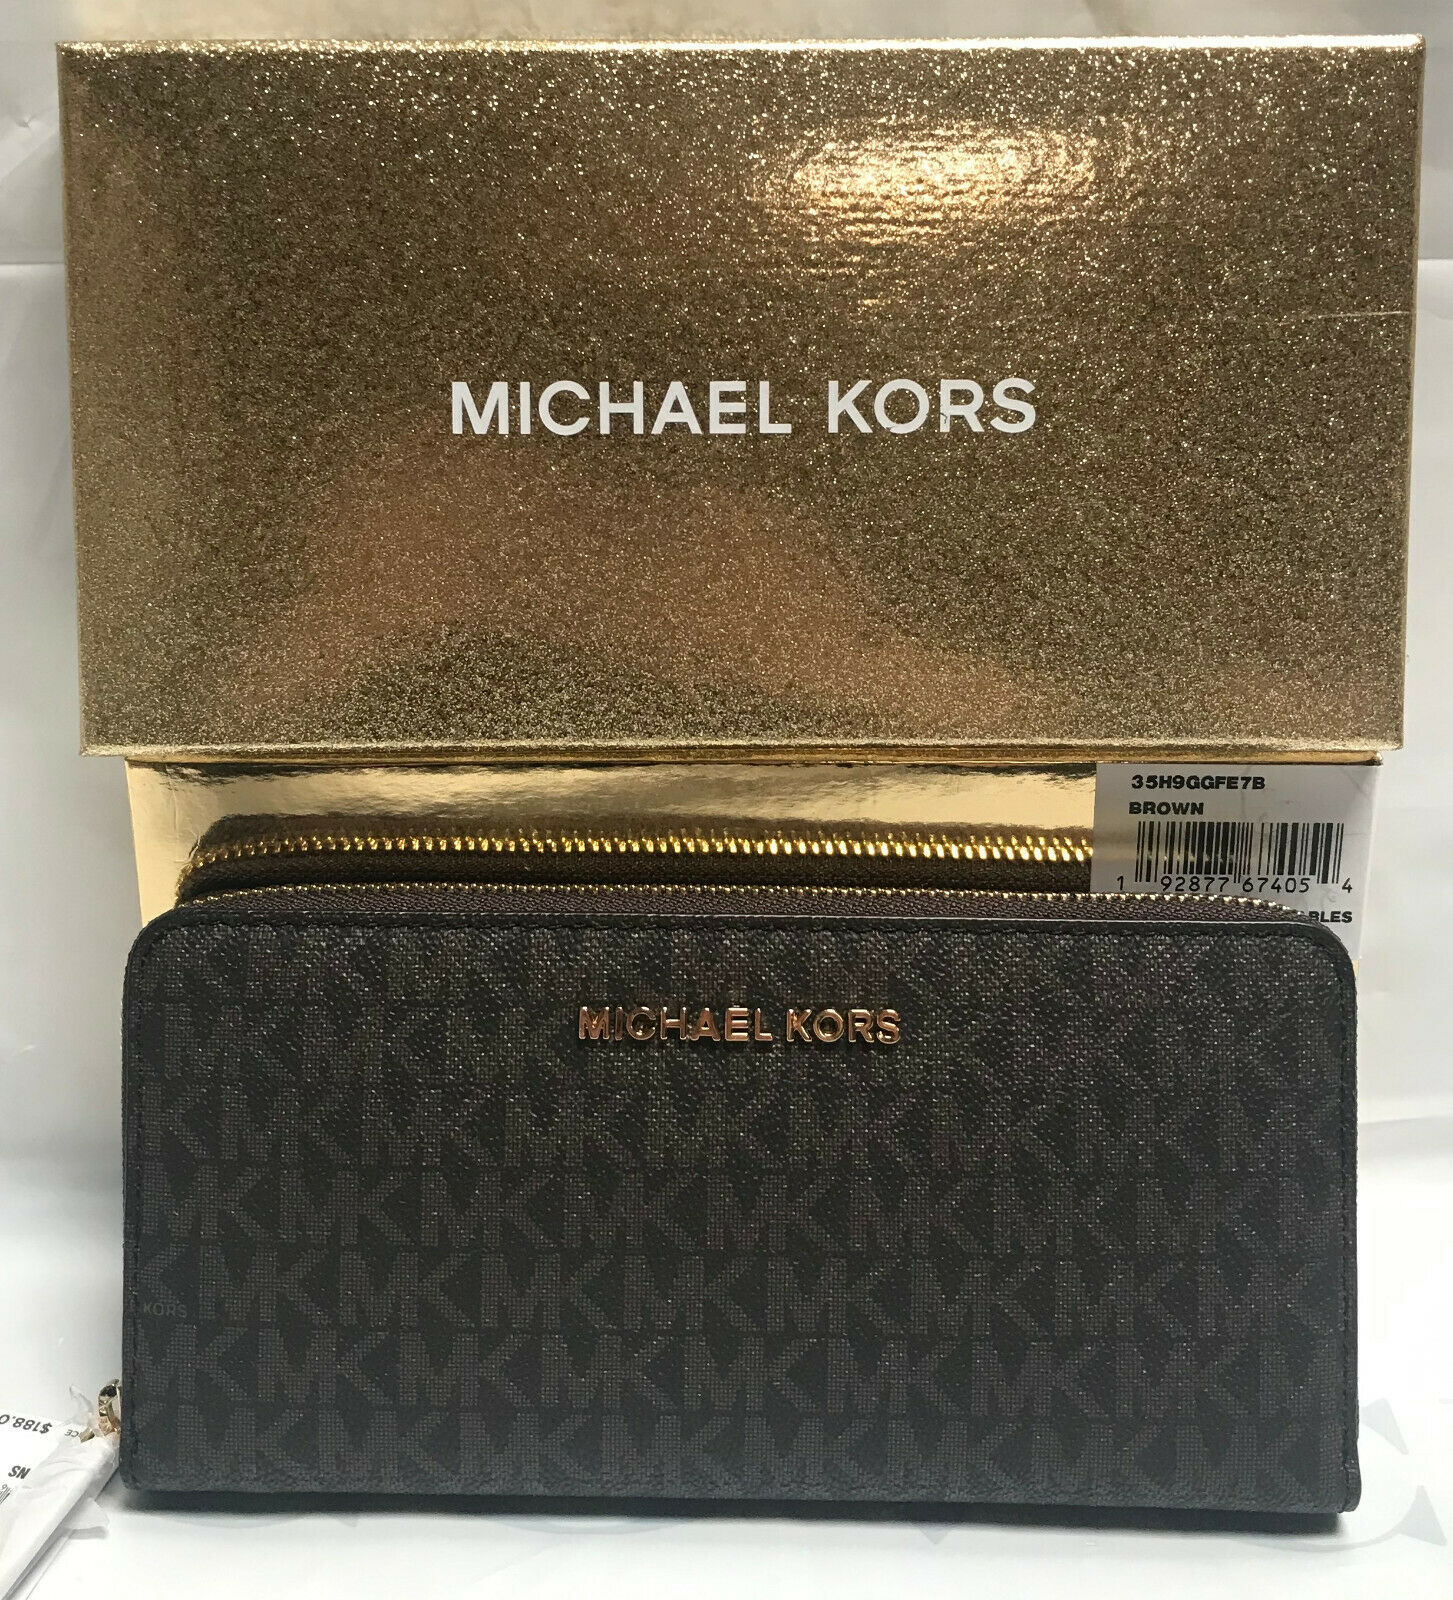 Primary image for Michael Kors Giftables Large Zip Around Continental Wallet with Gift Box - Brown